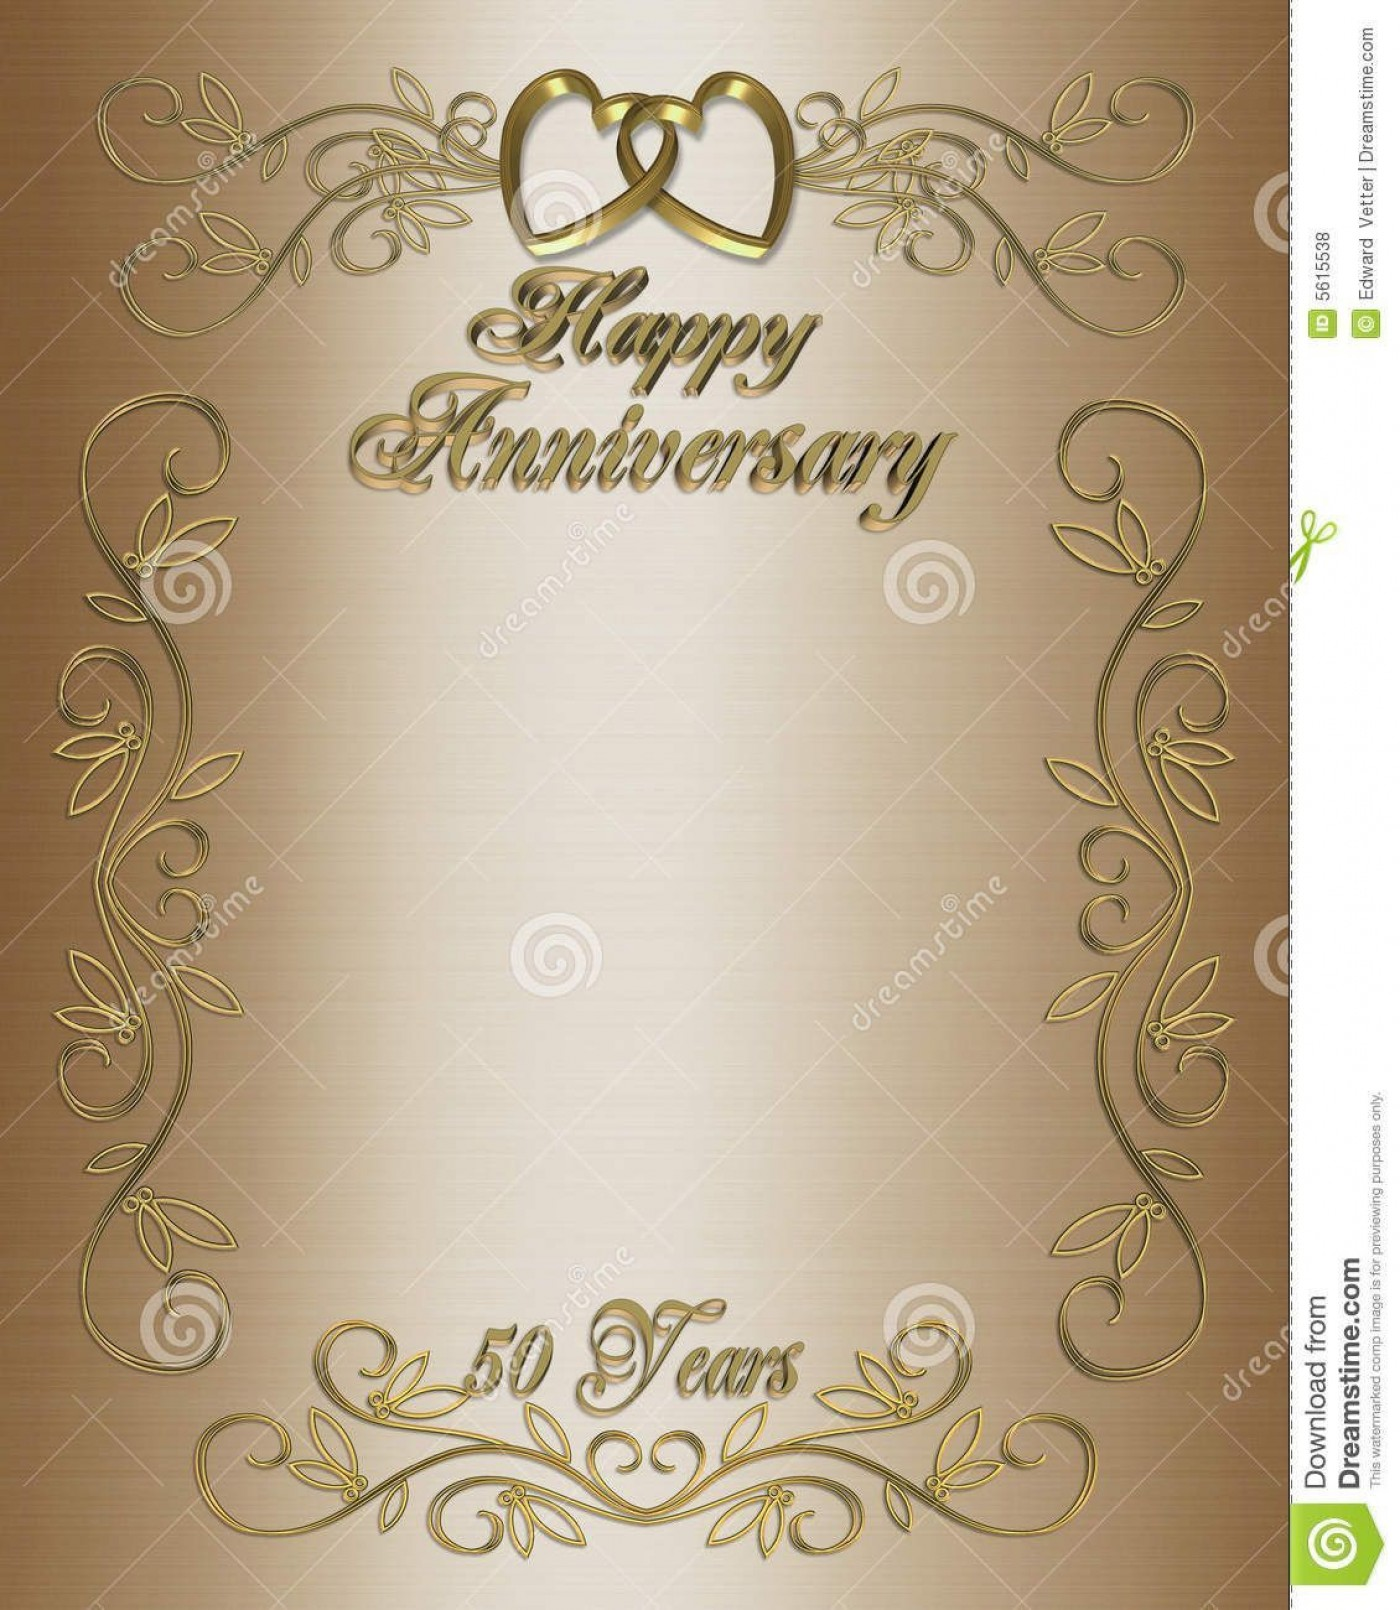 007 Amazing 50th Anniversary Party Invitation Template Picture  Wedding Free Download Microsoft Word1400